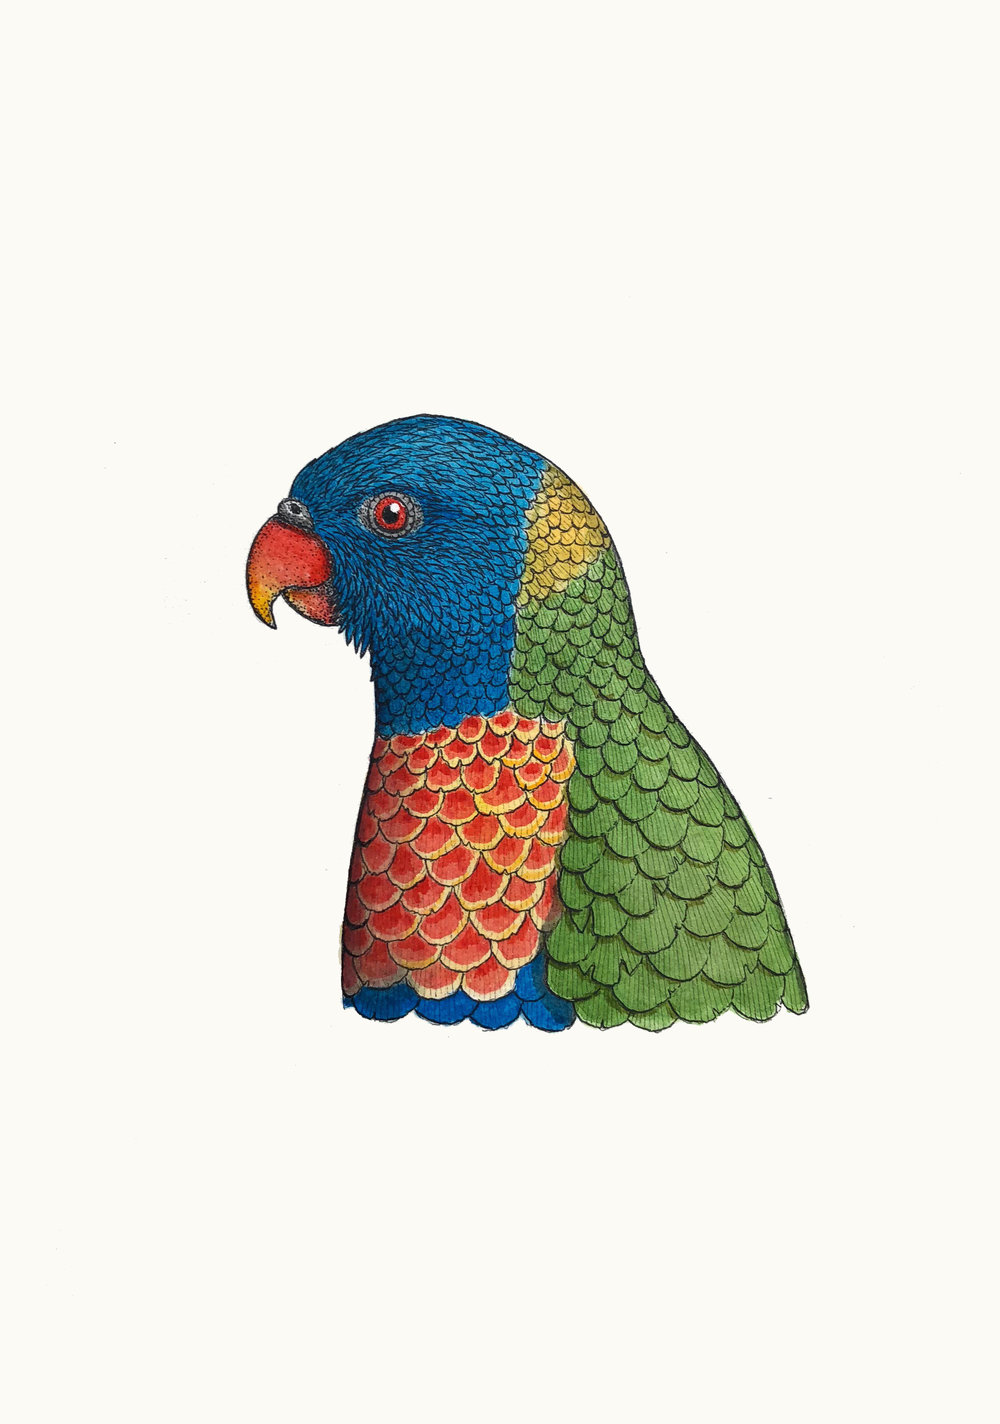 'Portrait of a Rainbow Lorikeet'